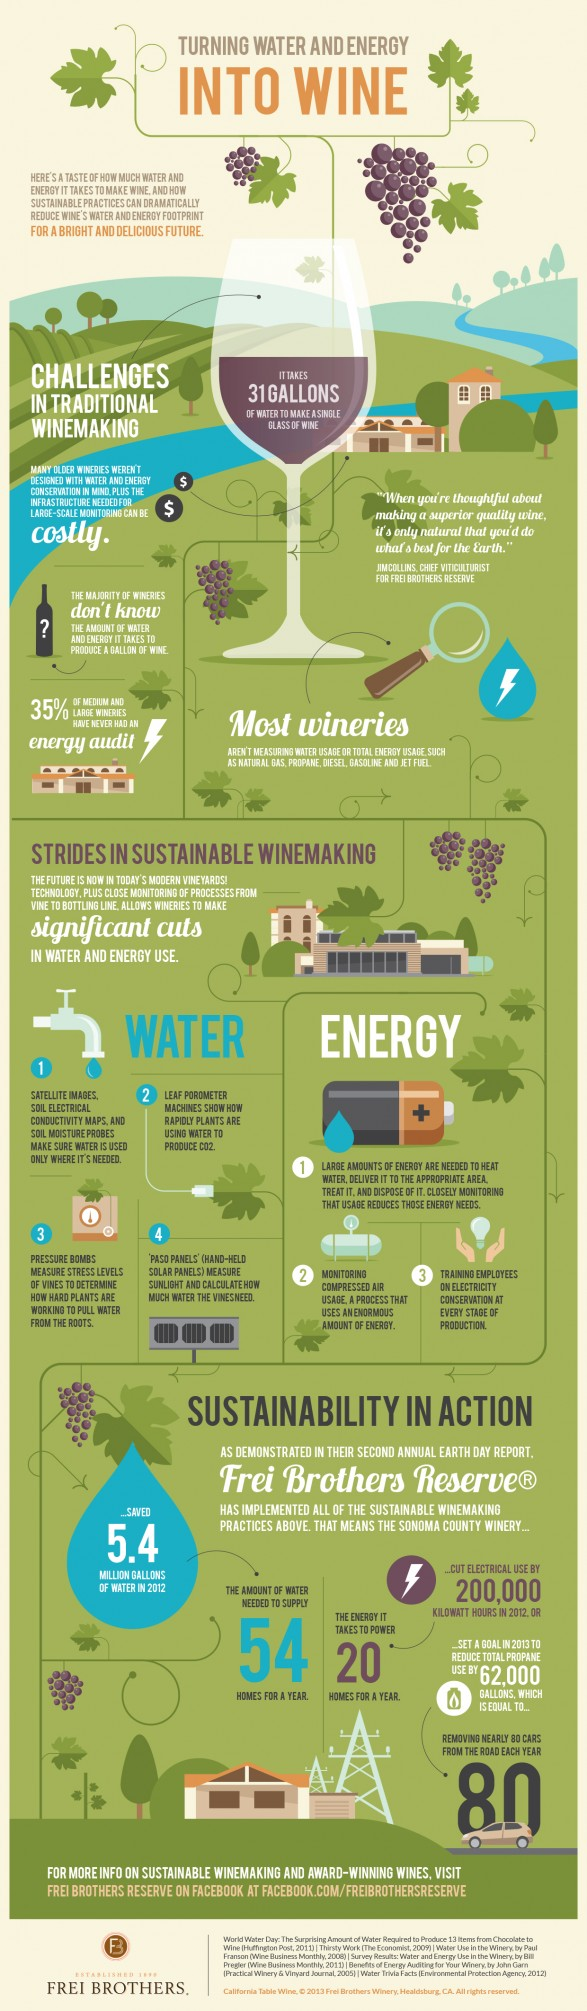 VIN-turning-water-and-energy-into-wine_51a660d6d2257_w587